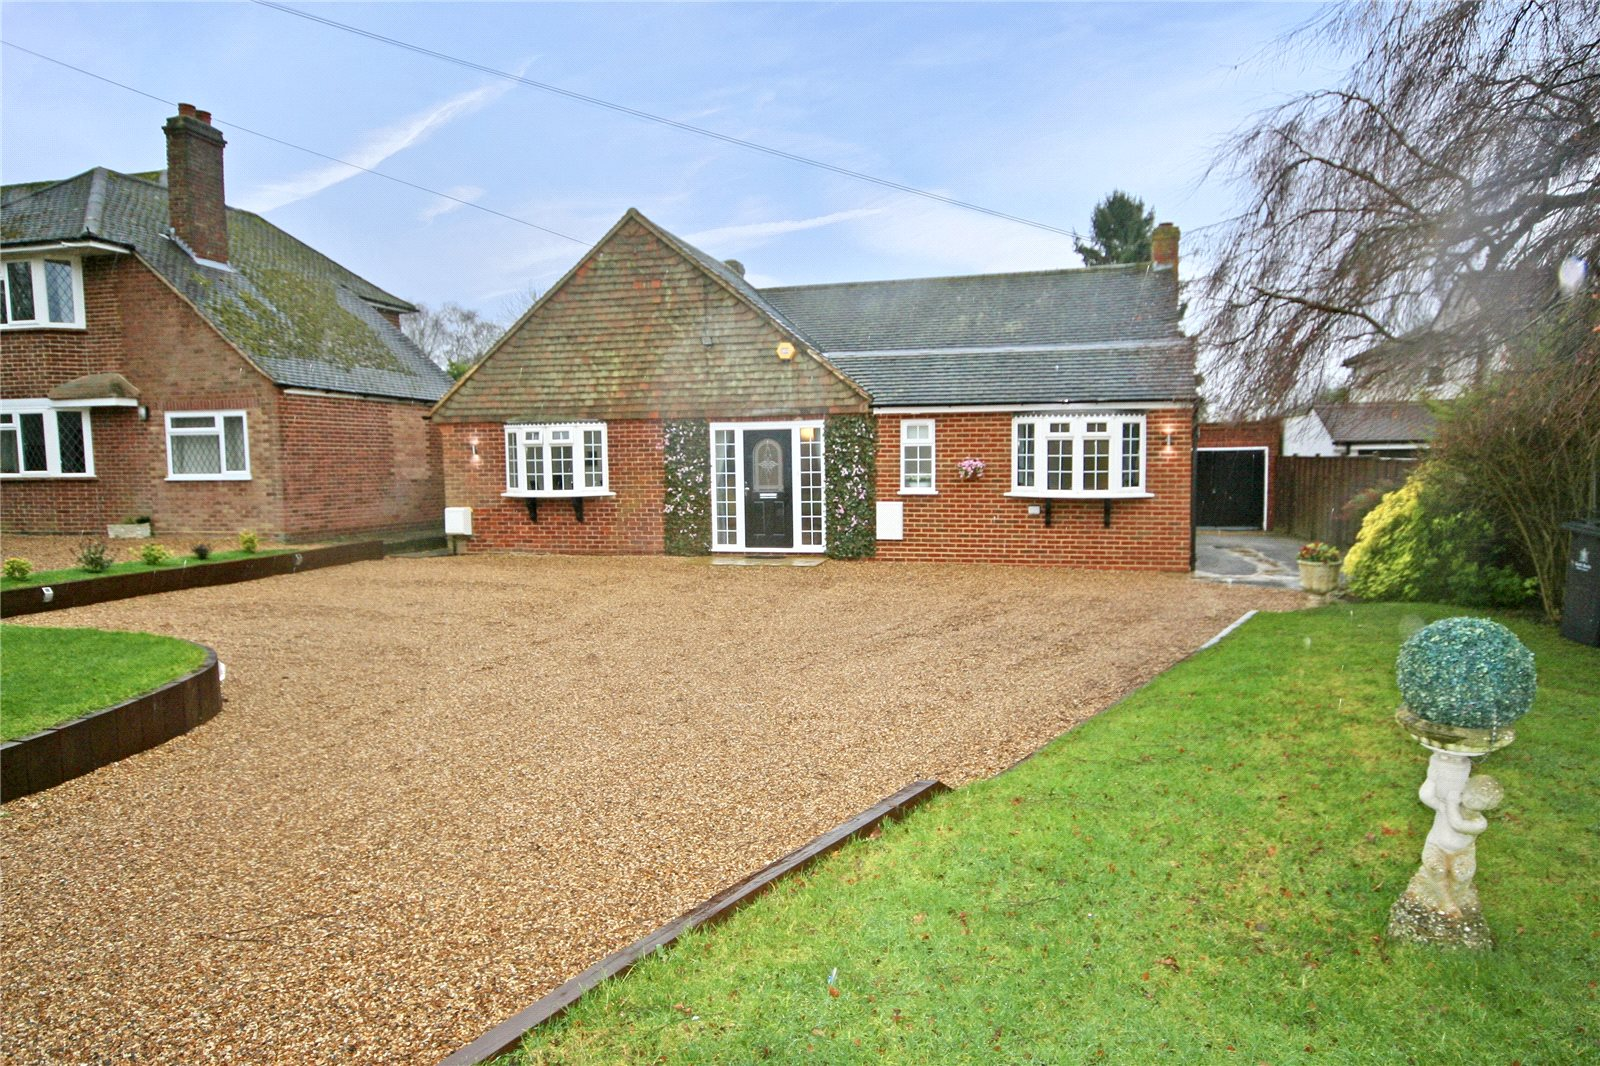 Single Family Home for Sale at Farthing Green Lane, Stoke Poges, Buckinghamshire, SL2 Stoke Poges, England